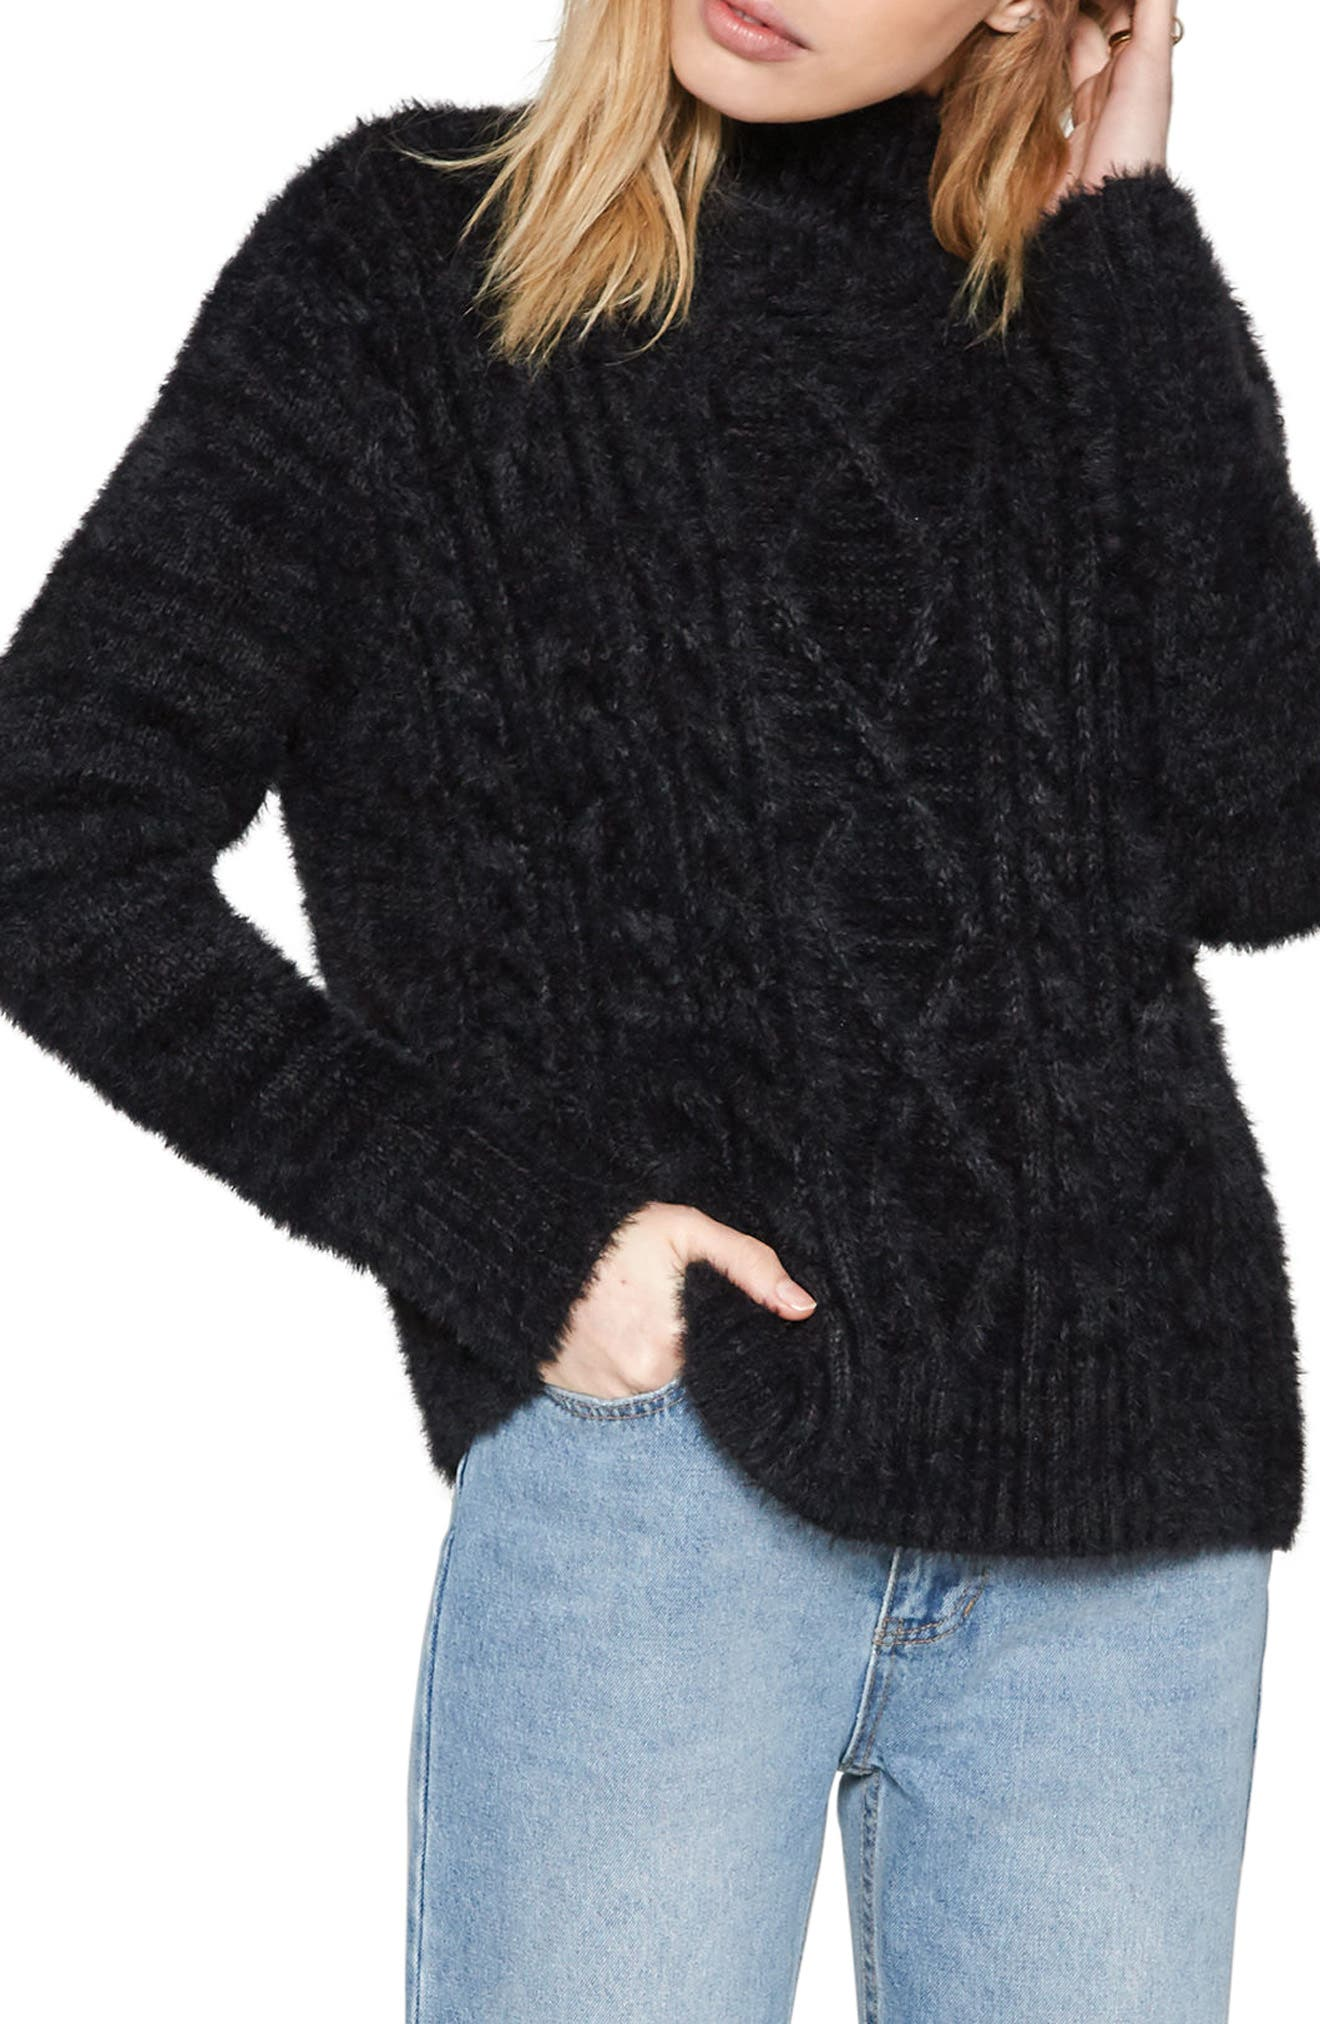 Cool Winds Cable Knit Sweater,                             Main thumbnail 1, color,